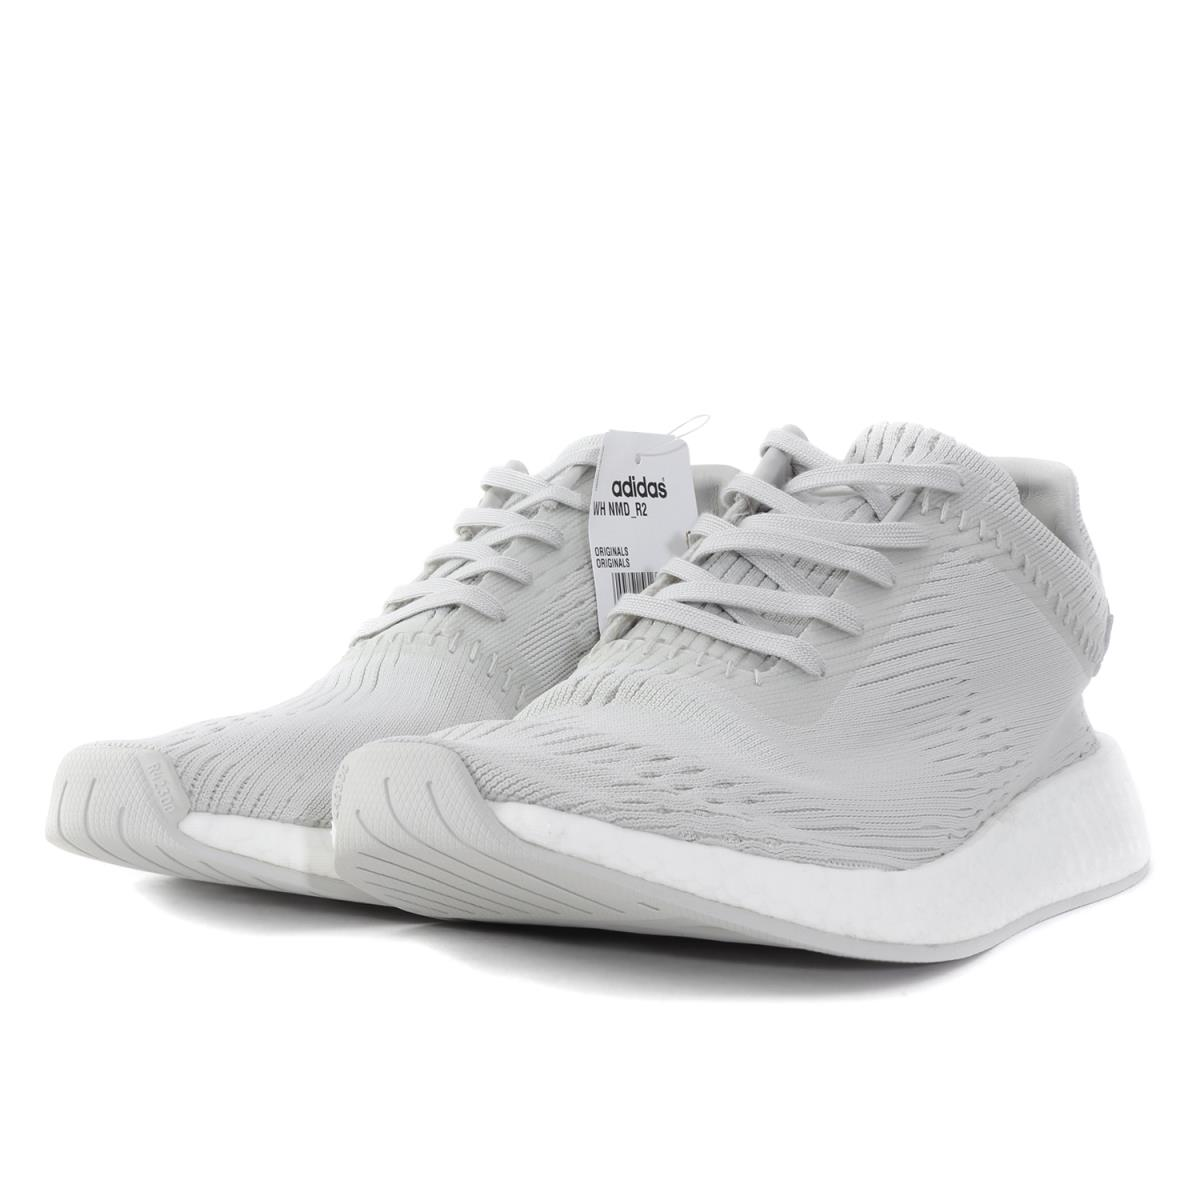 separation shoes d46fb 7eed3 adidas (Adidas) X wings + horns WH NMD R2 (BB3118) light gray US10.5(28.5cm)